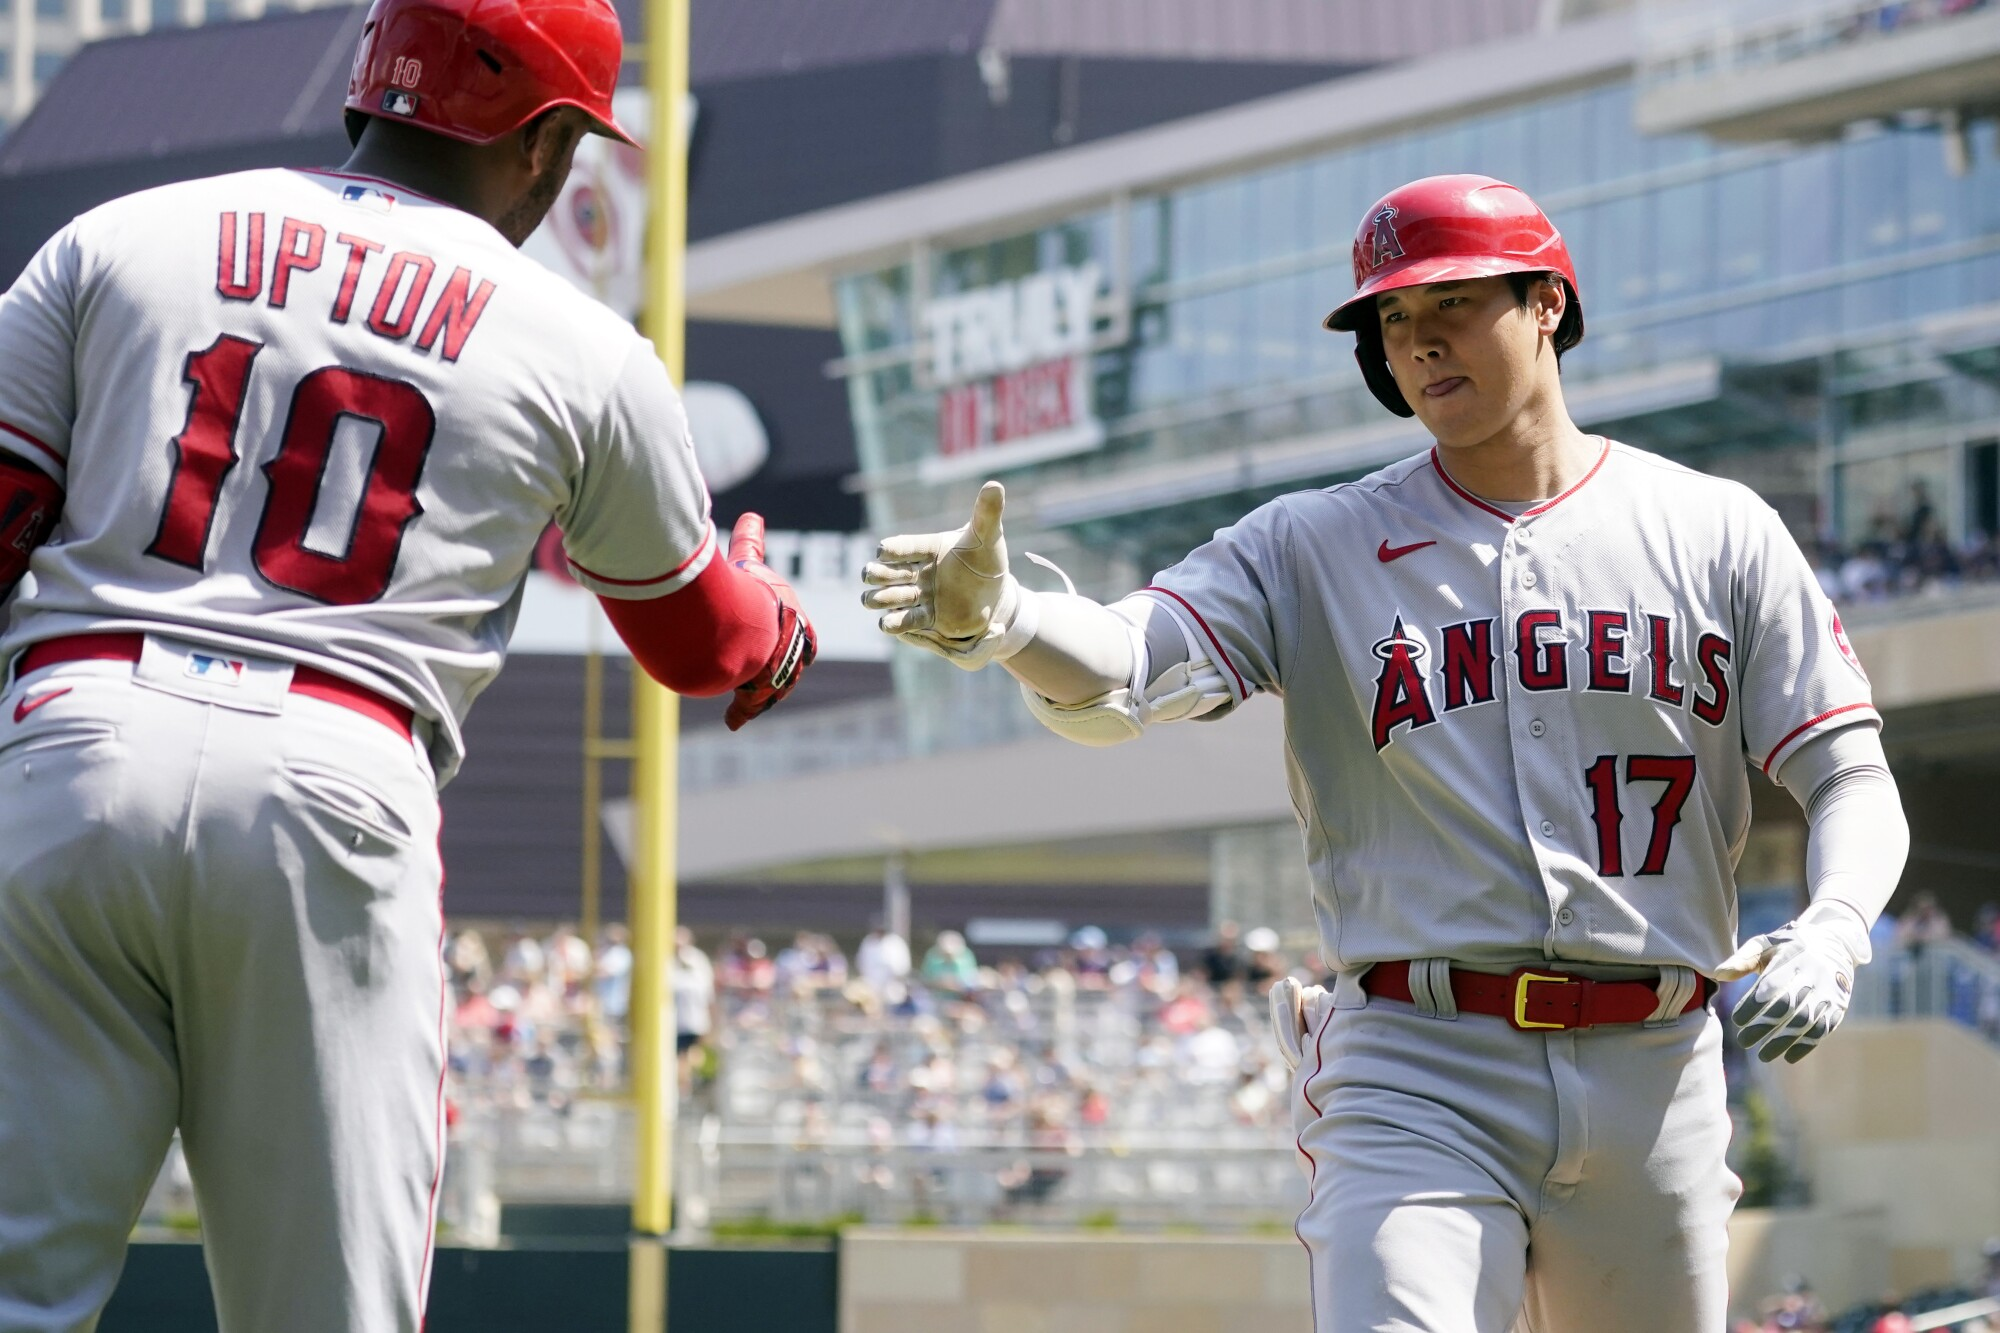 Shohei Ohtani hit his 35th home run in the Angels' 6-2 win on Sunday. (AP Photo/Jim Mone)